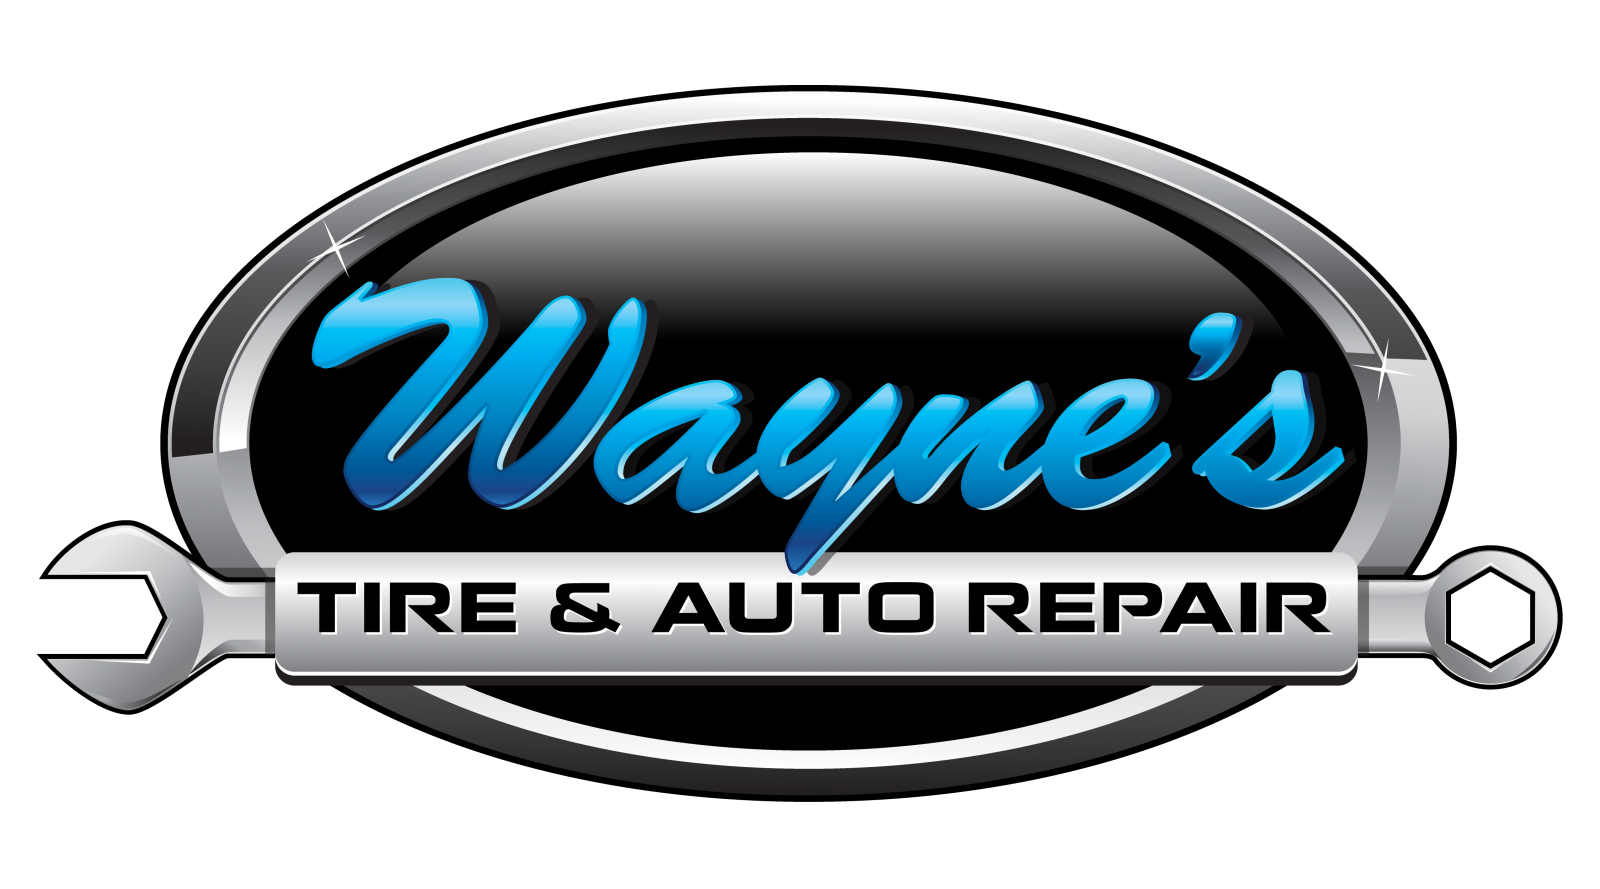 auto repair logo - Google Search | Auto Mechanic | Pinterest